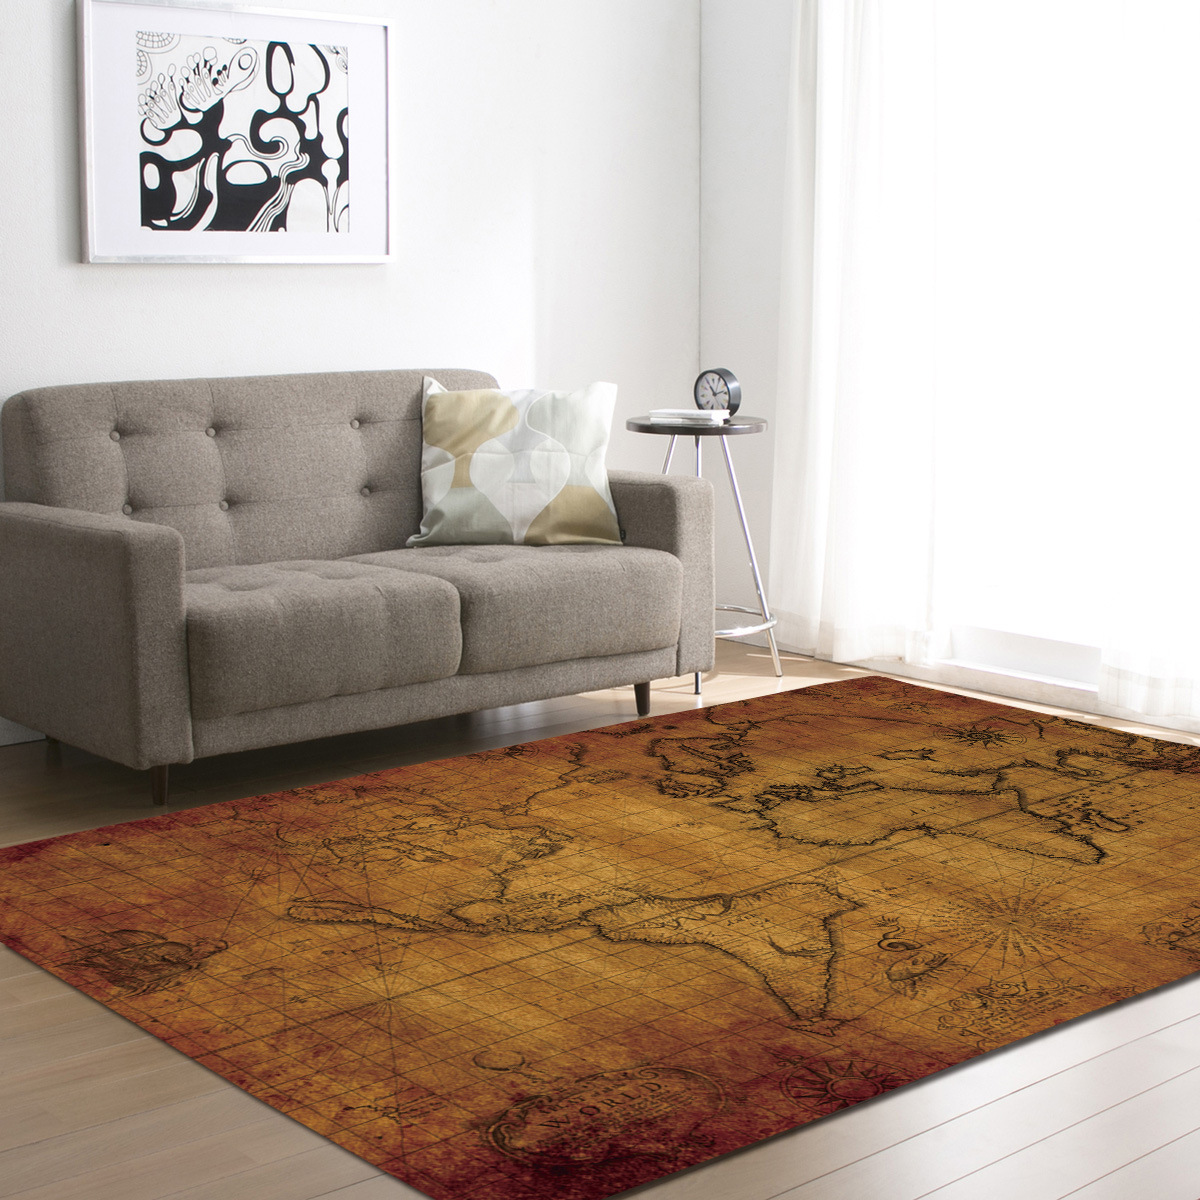 World Map Pattern Carpets For Living Room Kids Bedroom Carpet Large Size Home Decor Mat Office Chair Floor Mats